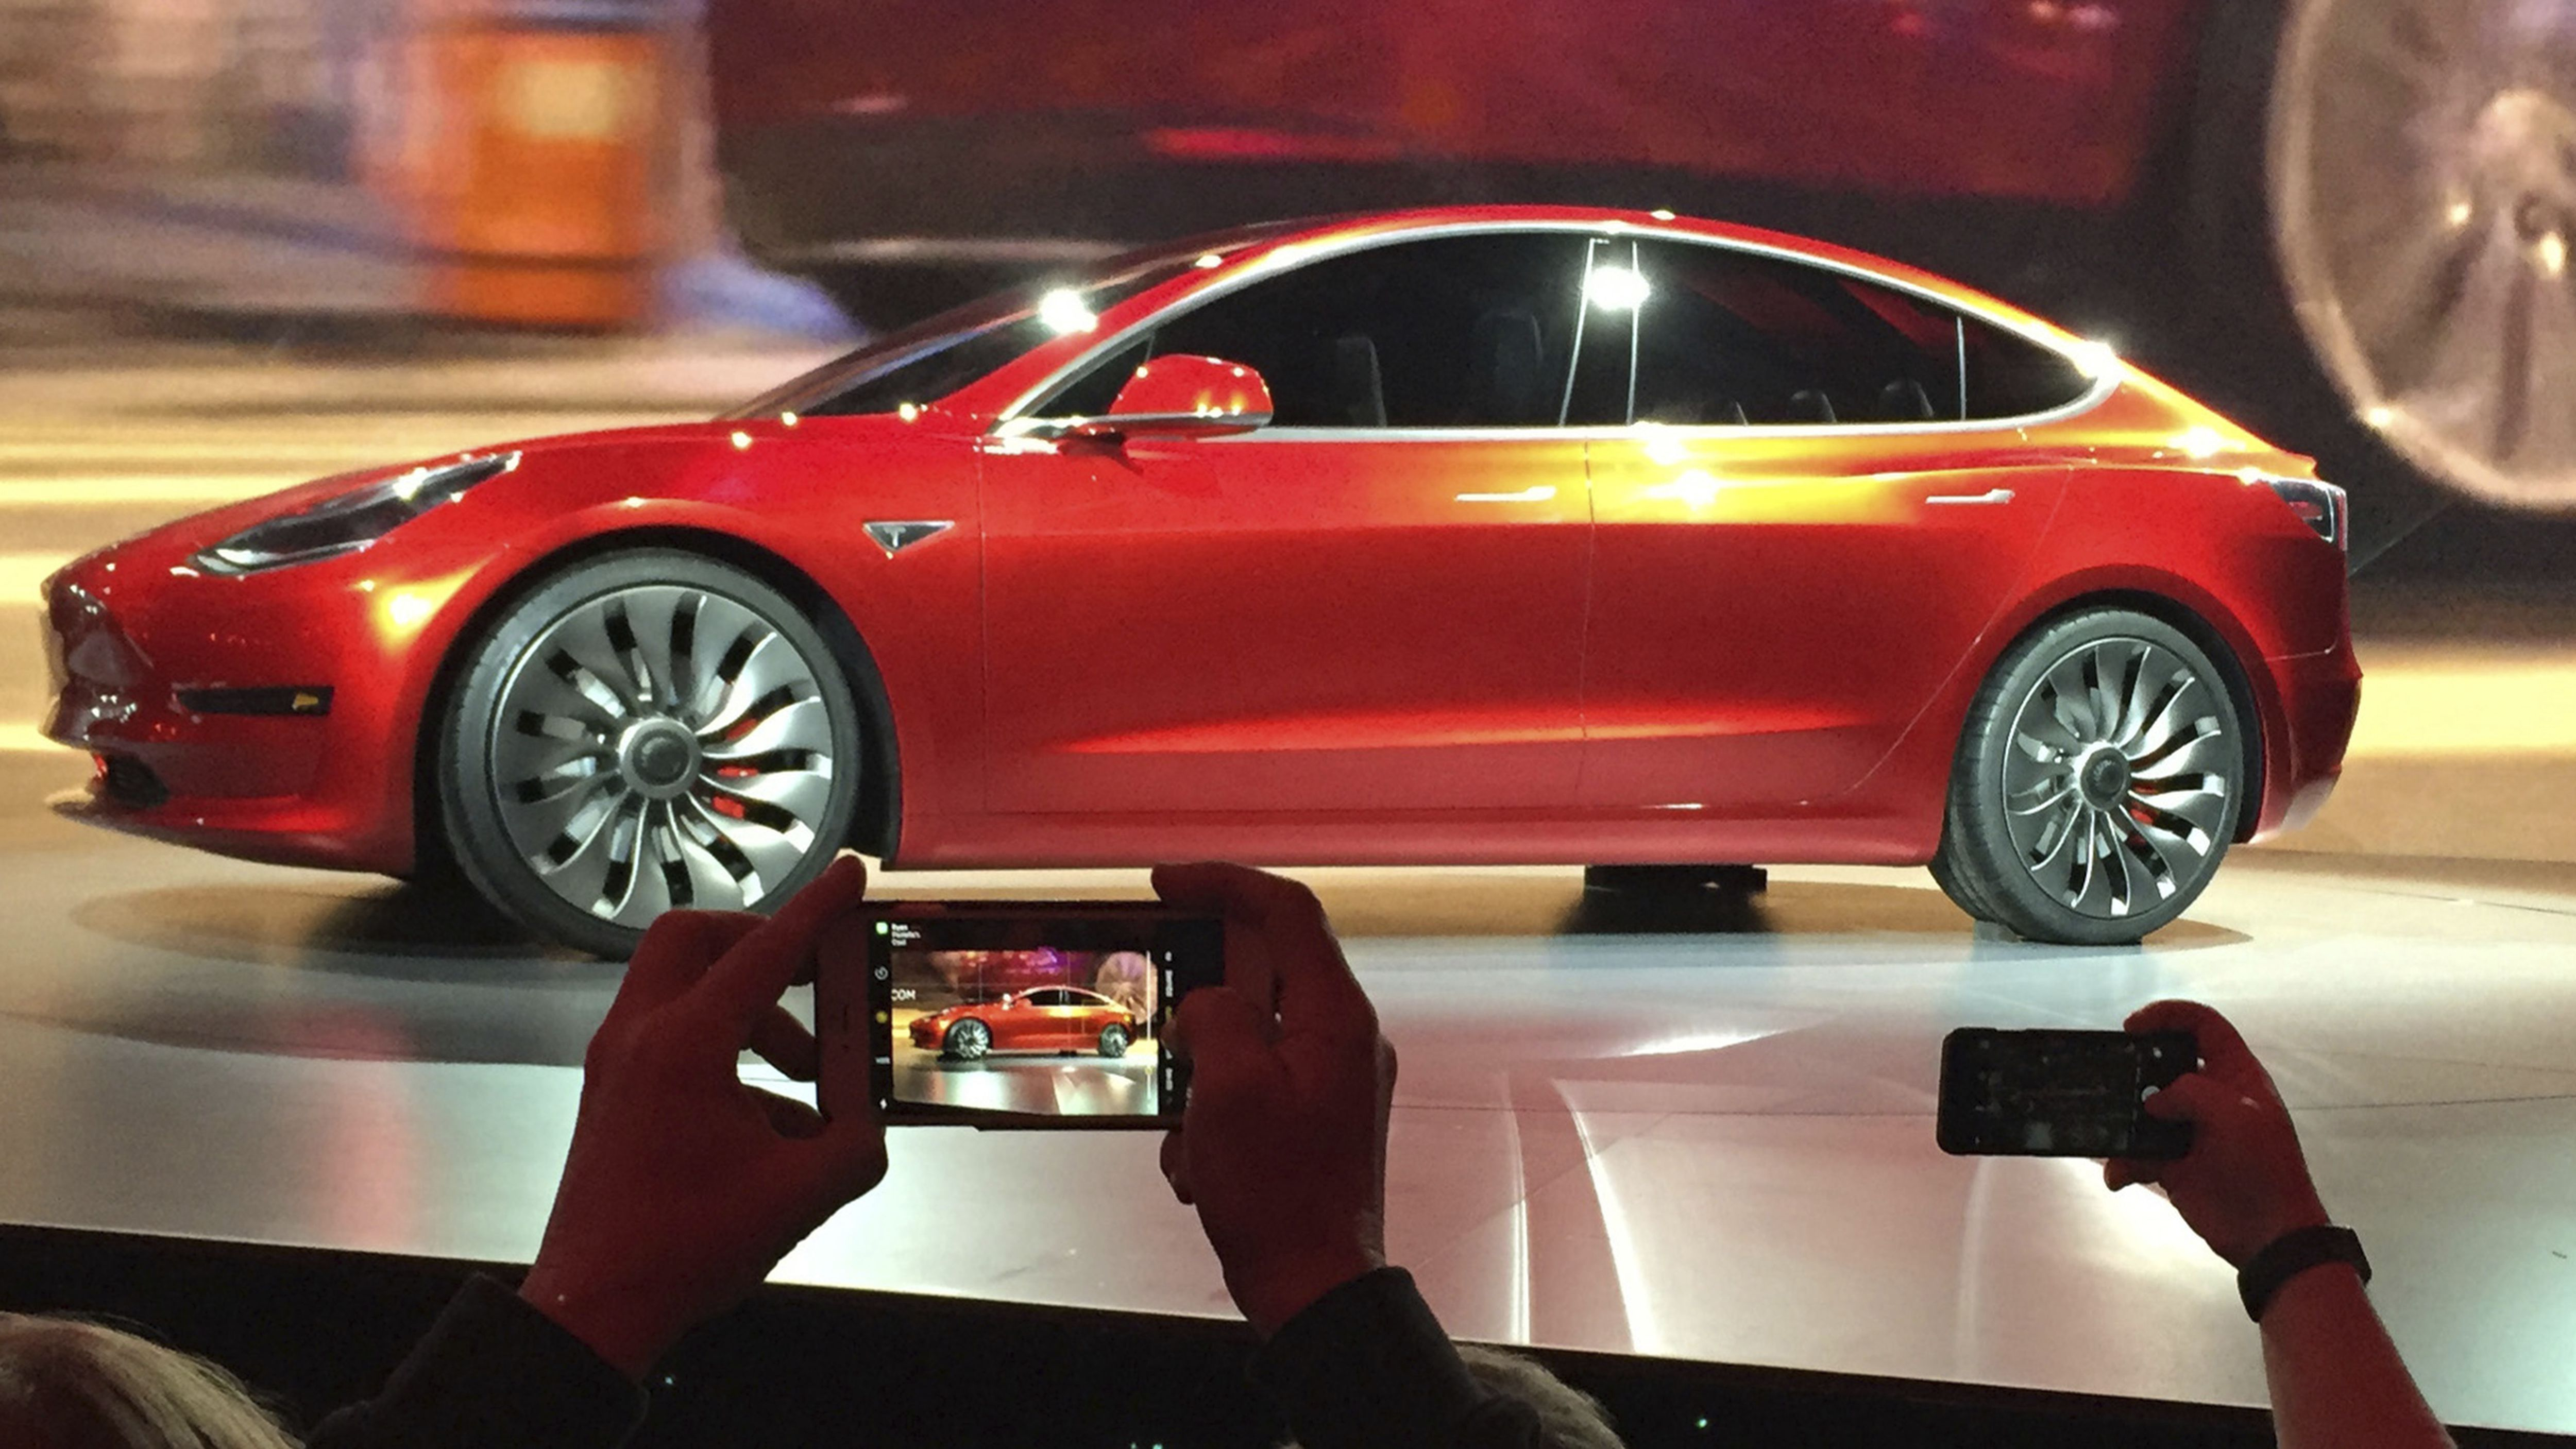 In this March 31, 2016, file photo, Tesla Motors unveils the new lower-priced Model 3 sedan at the Tesla Motors design studio in Hawthorne, Calif. Electric car maker Tesla said on Monday, July 3, 2017, that its Model 3 car will go on sale on Friday.